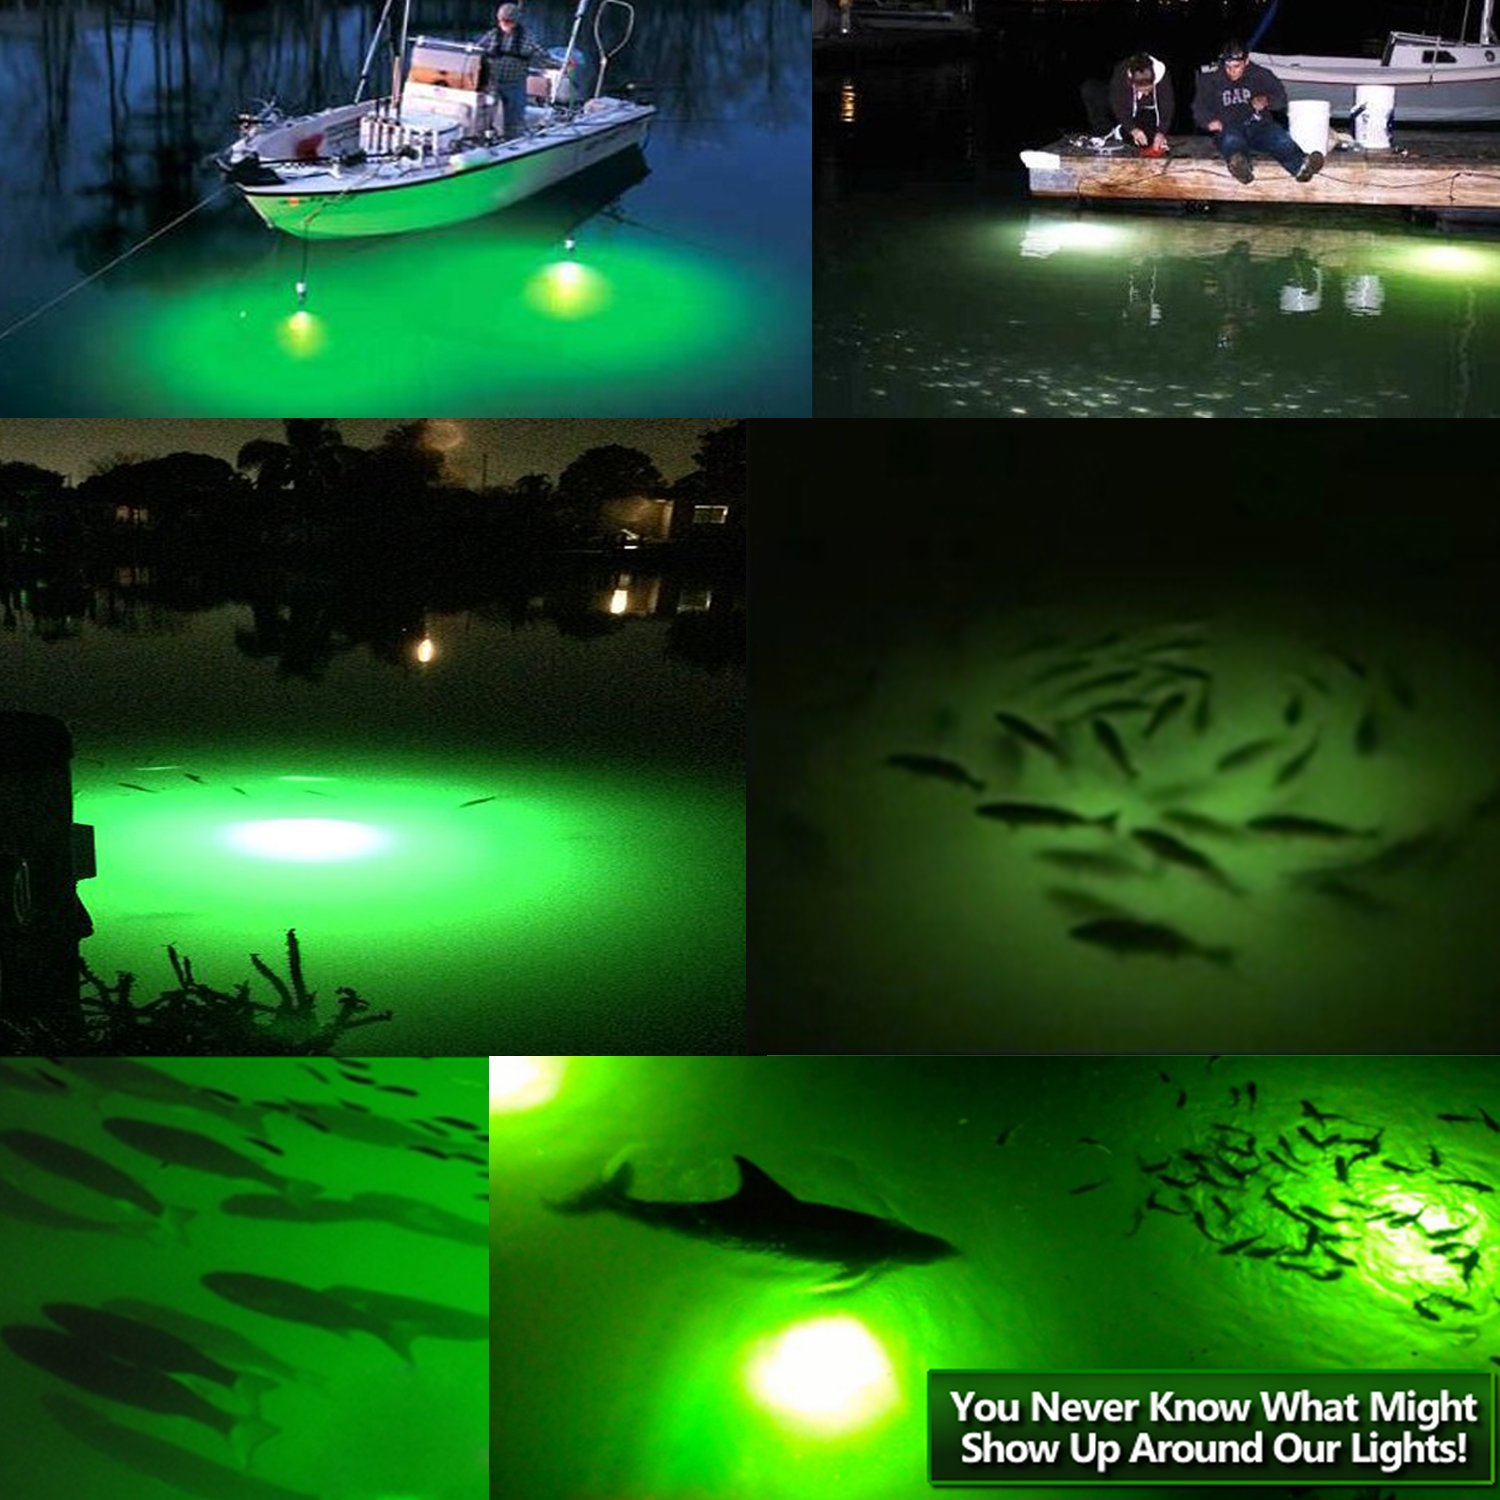 Goture 12V IP68 High-Power LED Fully Submersible Night Fishing Light Deep Drop Underwater Lure Bait Fish Finder Lamp with 5.47 Cable for Krill, Phytoplankton, Squid - Blue